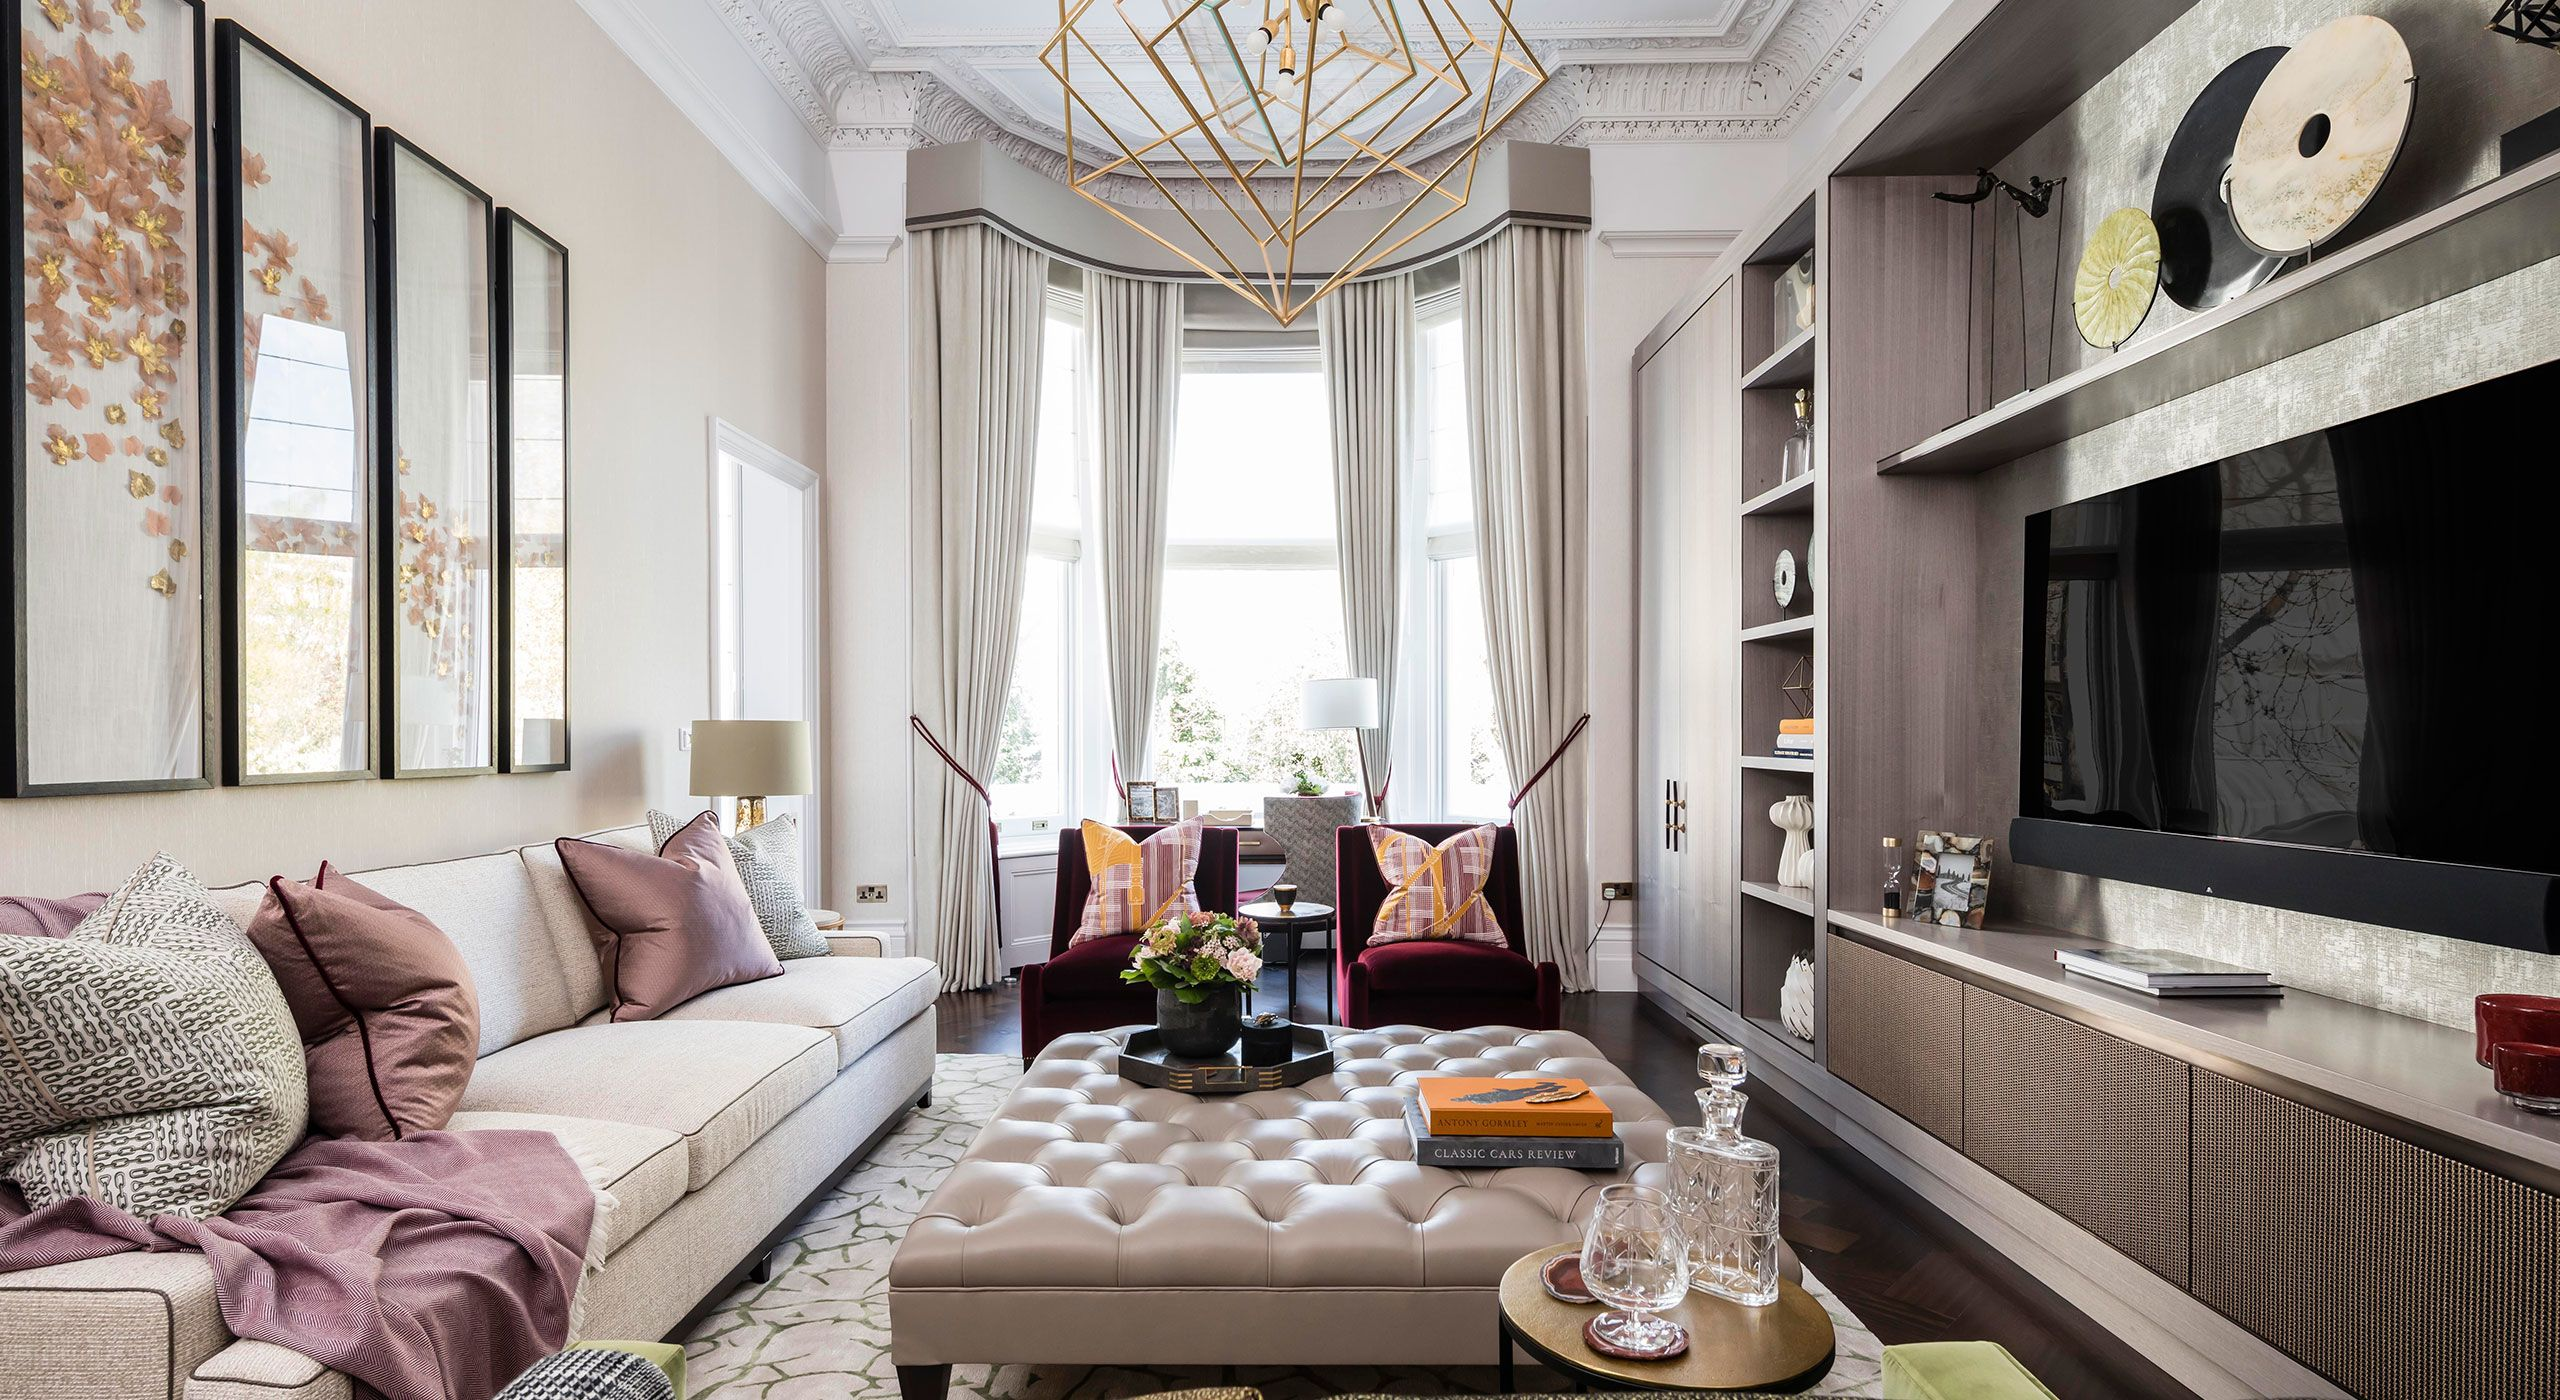 check-out-these-easy-home-interior-tips-interior_1